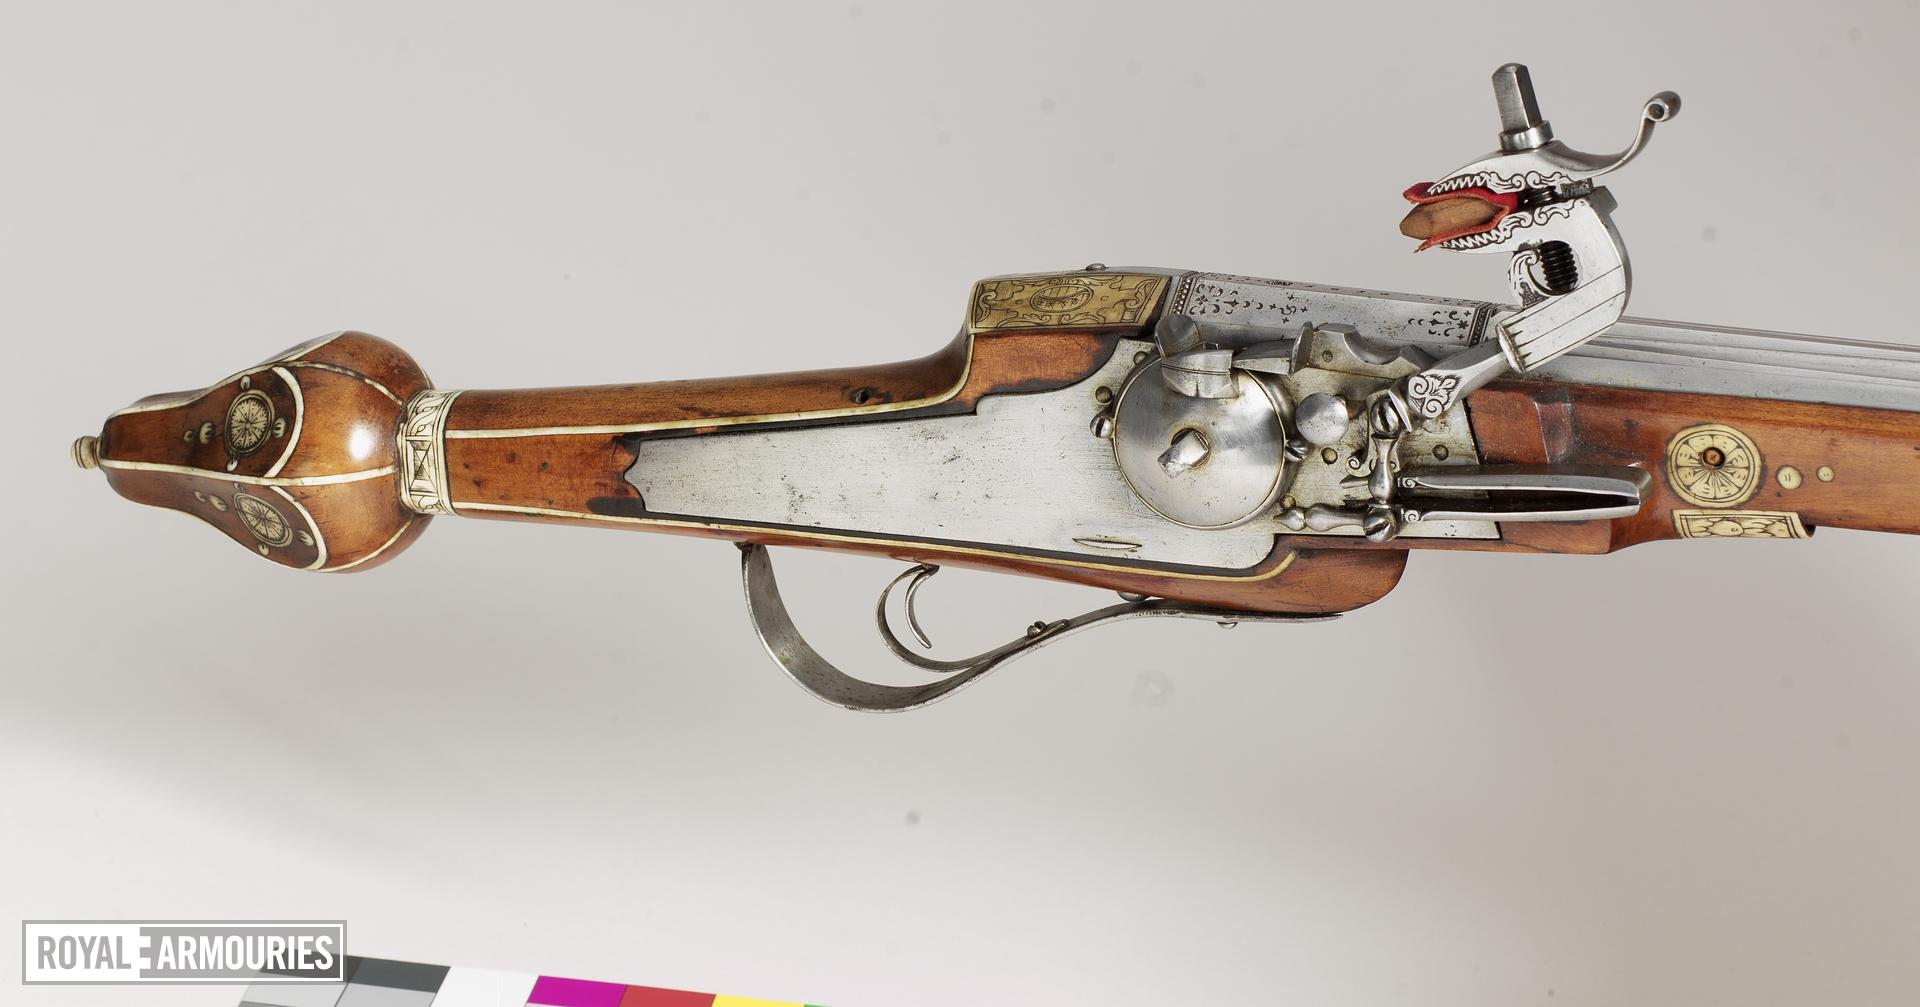 Wheellock muzzle-loading holster pistol - Barrel by Simon Helbig